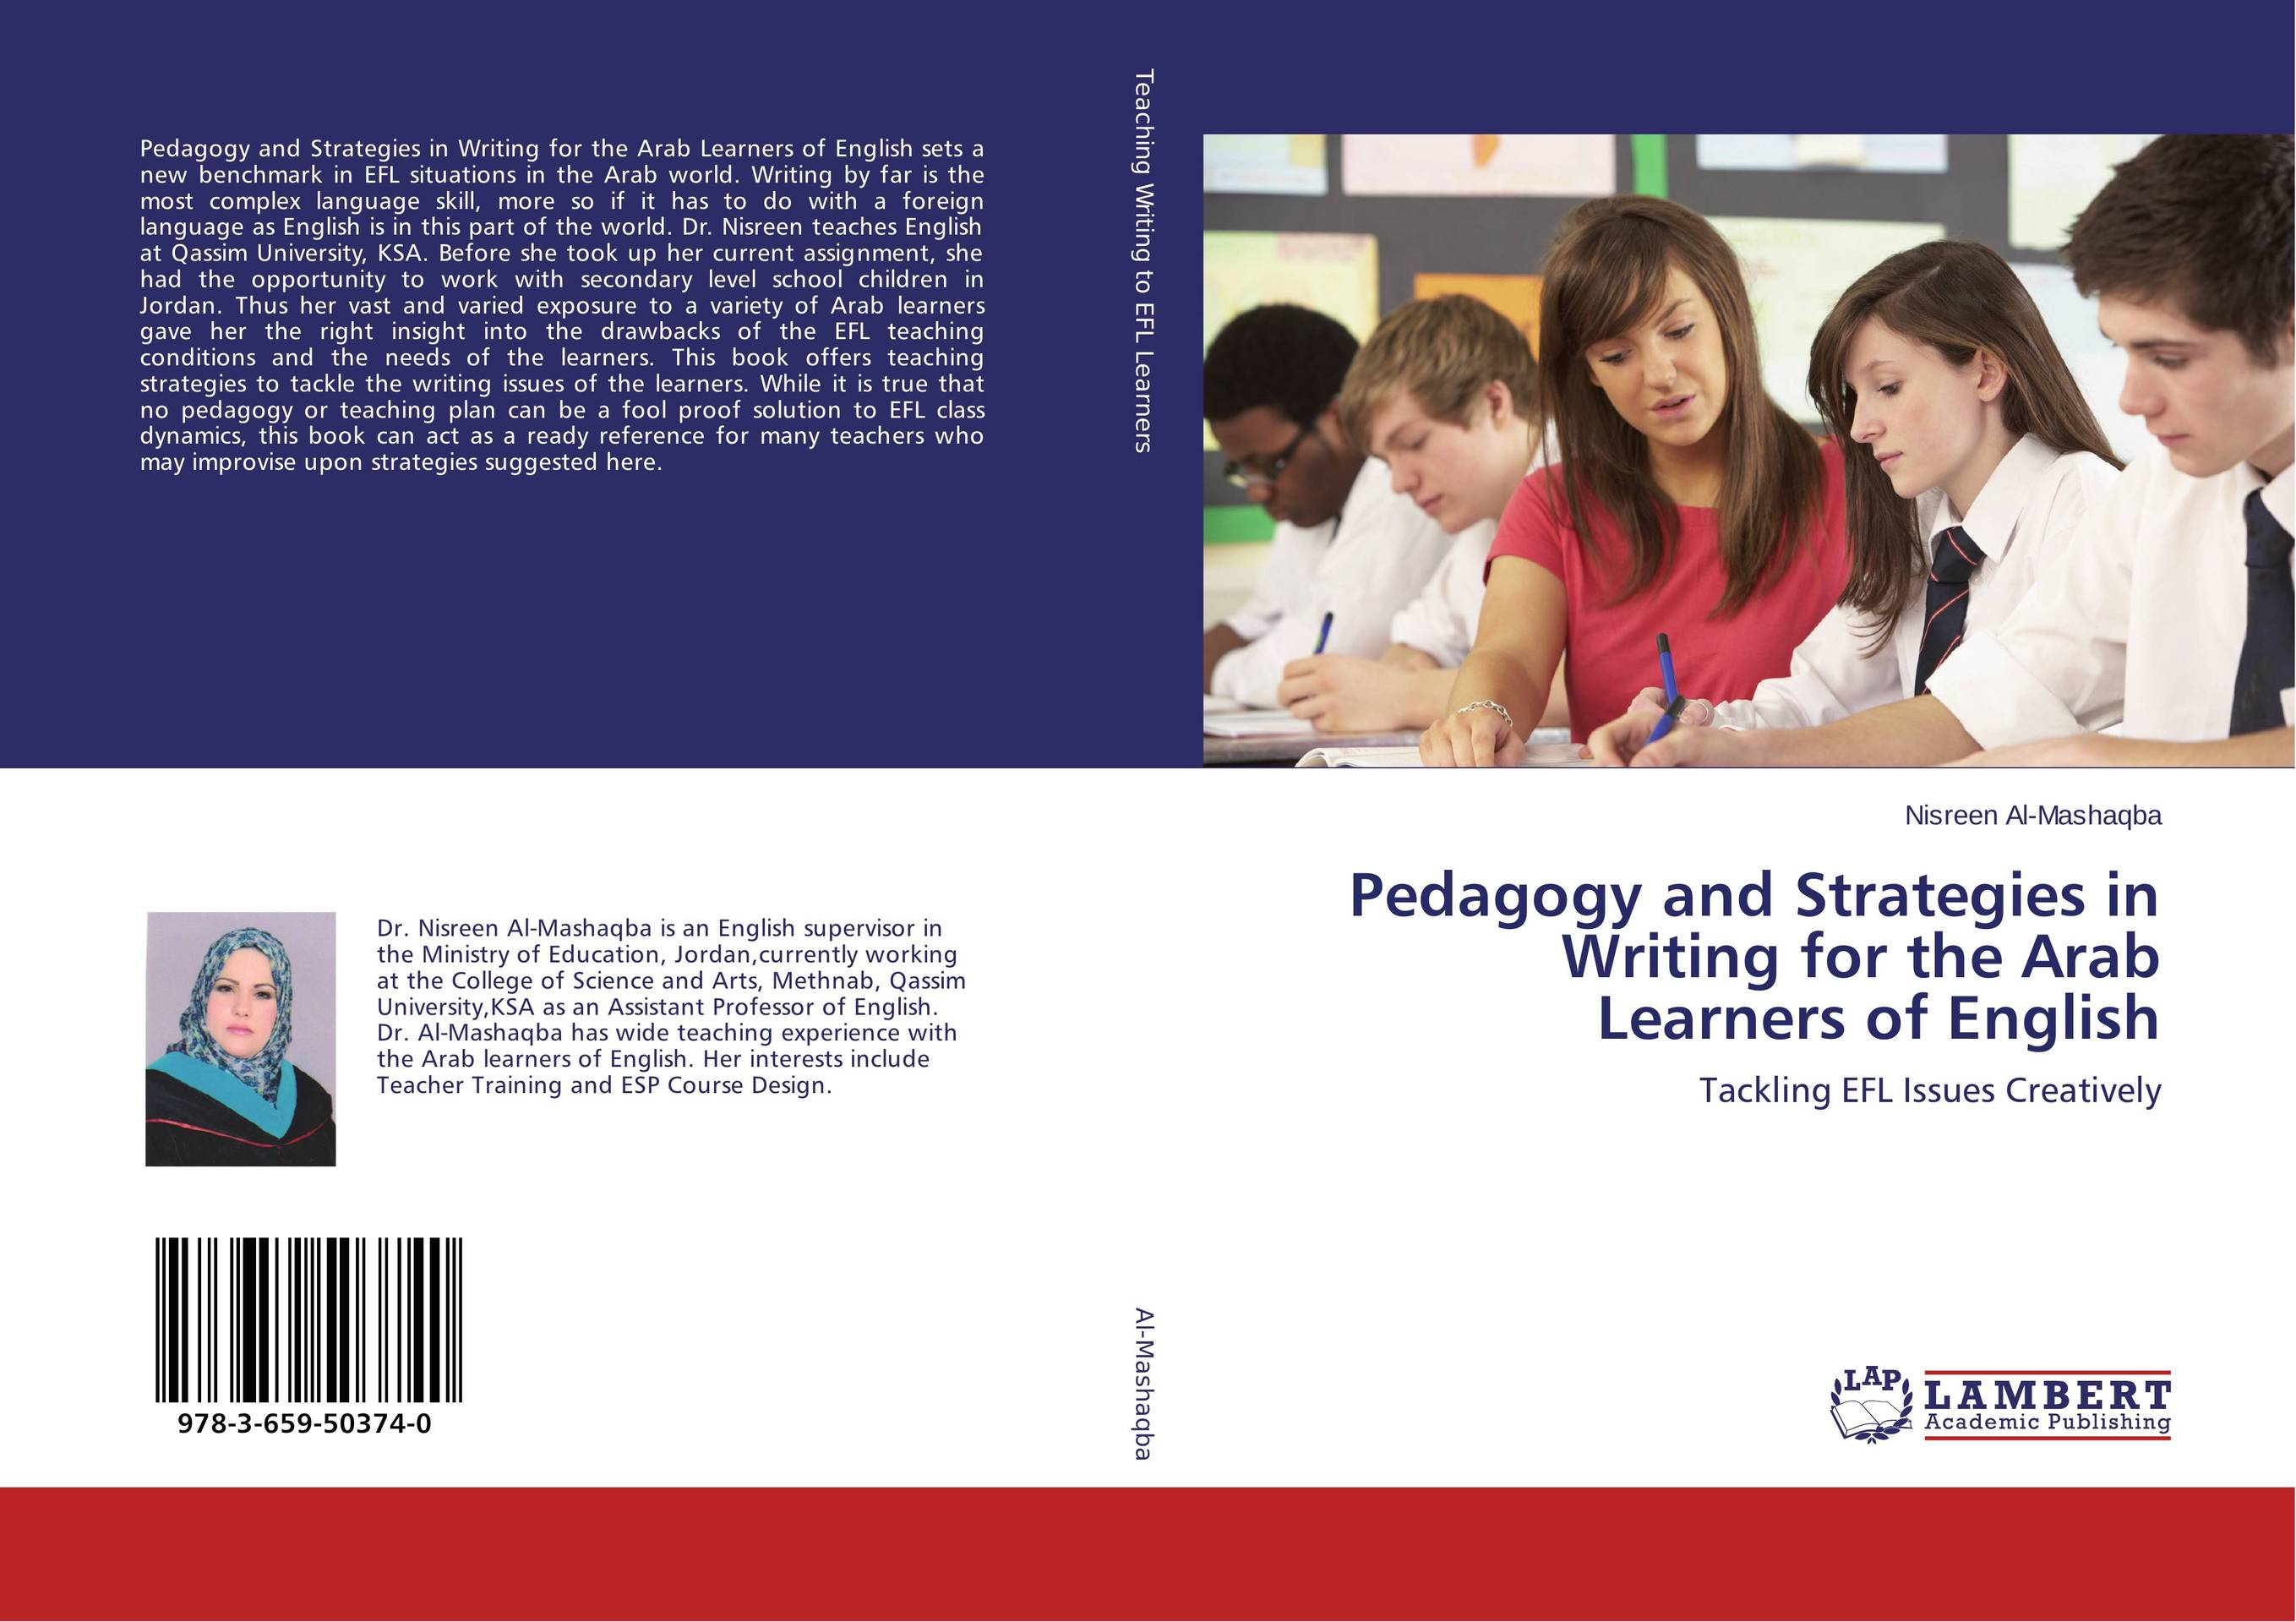 Pedagogy and Strategies in Writing for the Arab Learners of English the impact of vocabulary strategies on short and long term retention